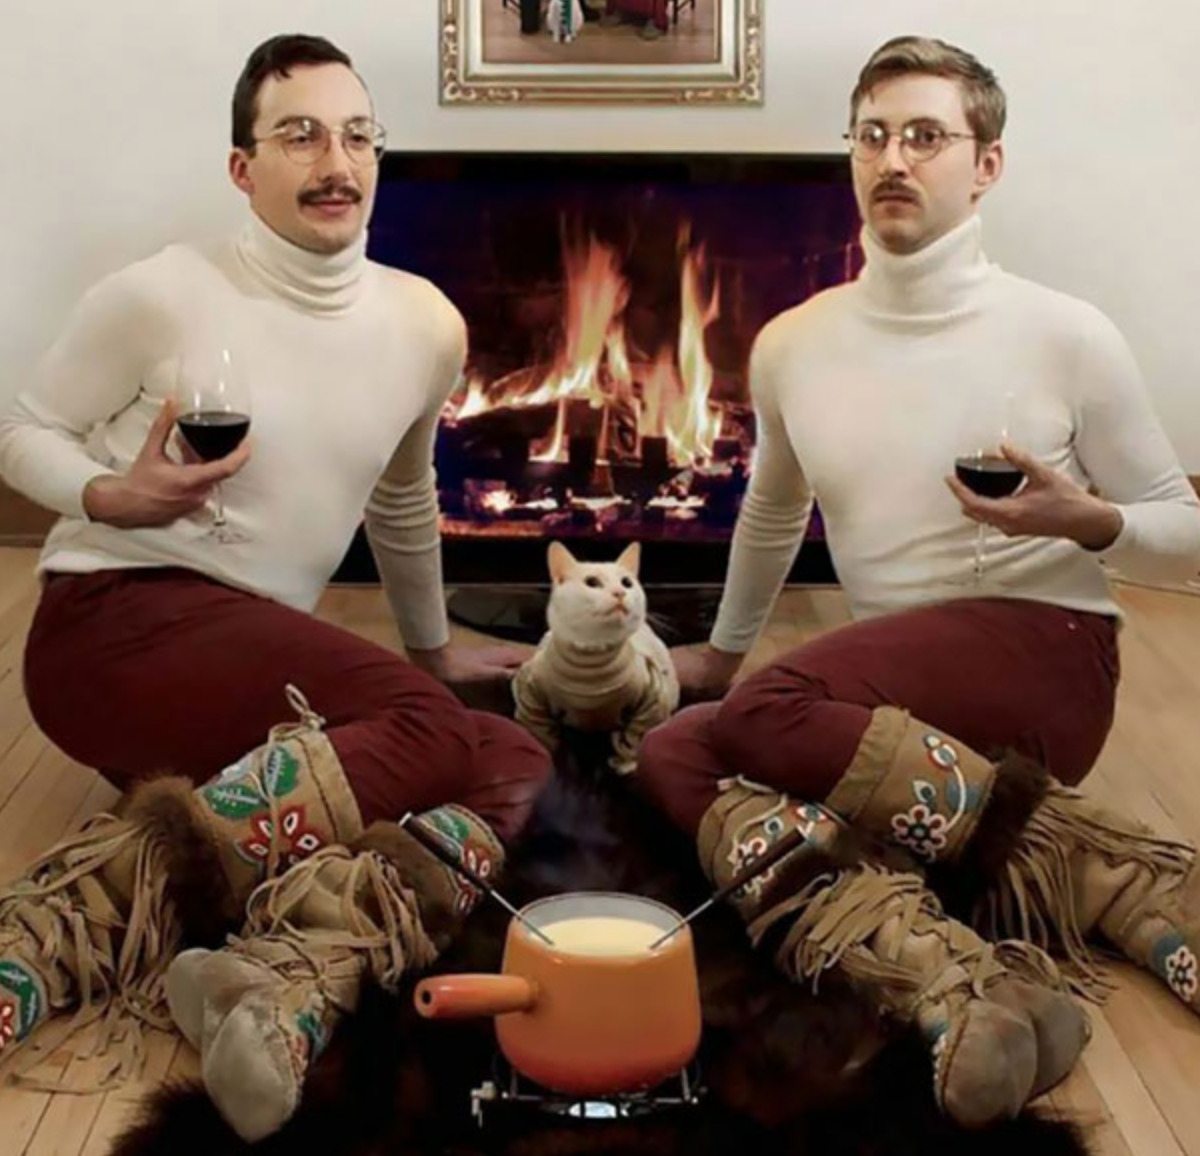 two guys in matching outfits (their cat has the same sweater too) with apot of fondue